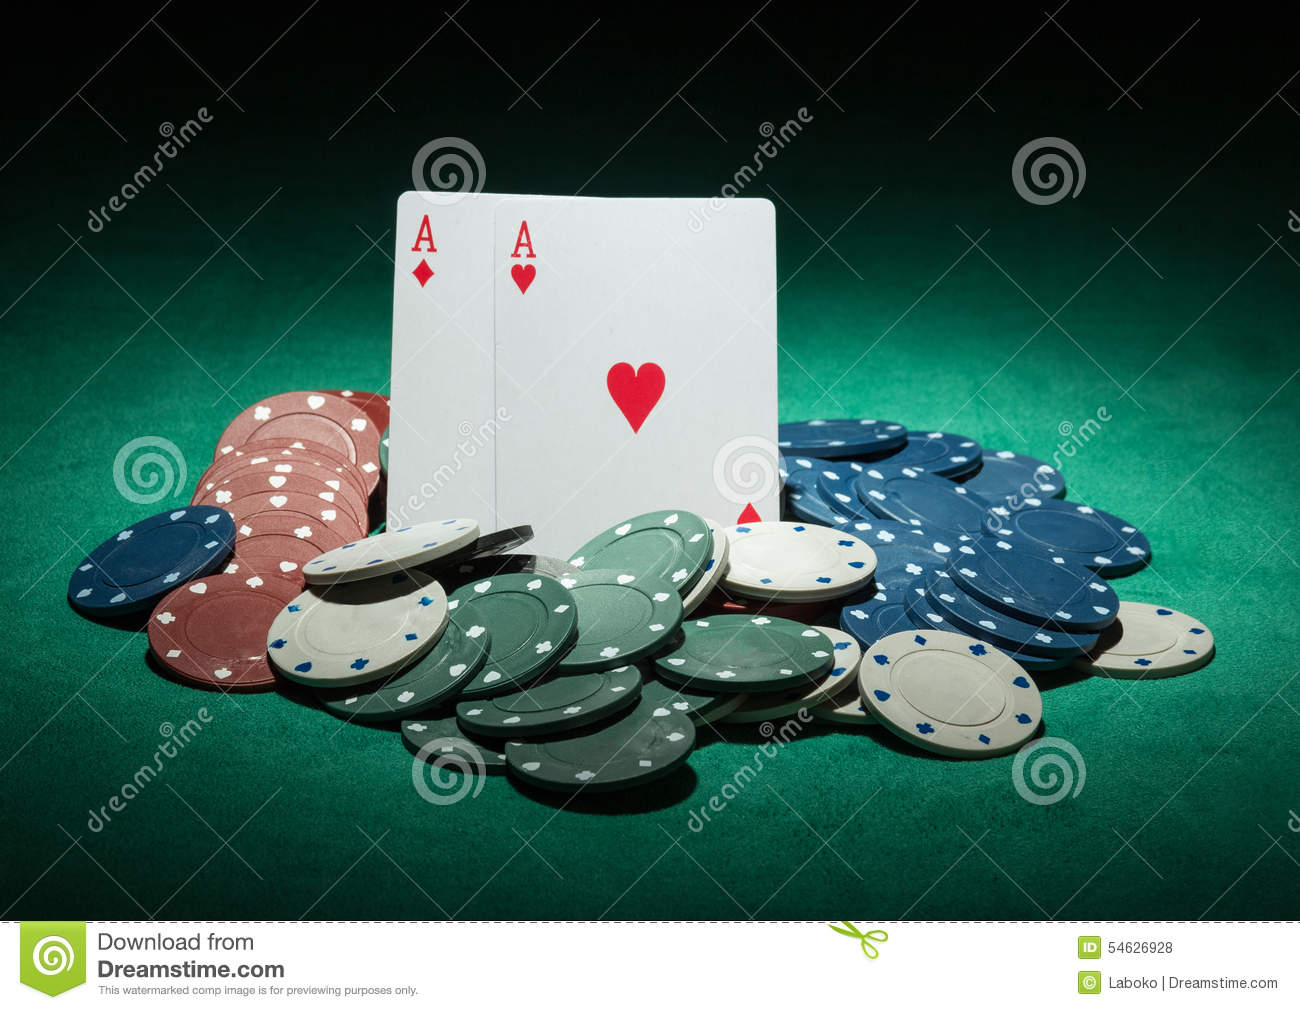 king and aces cards poker background